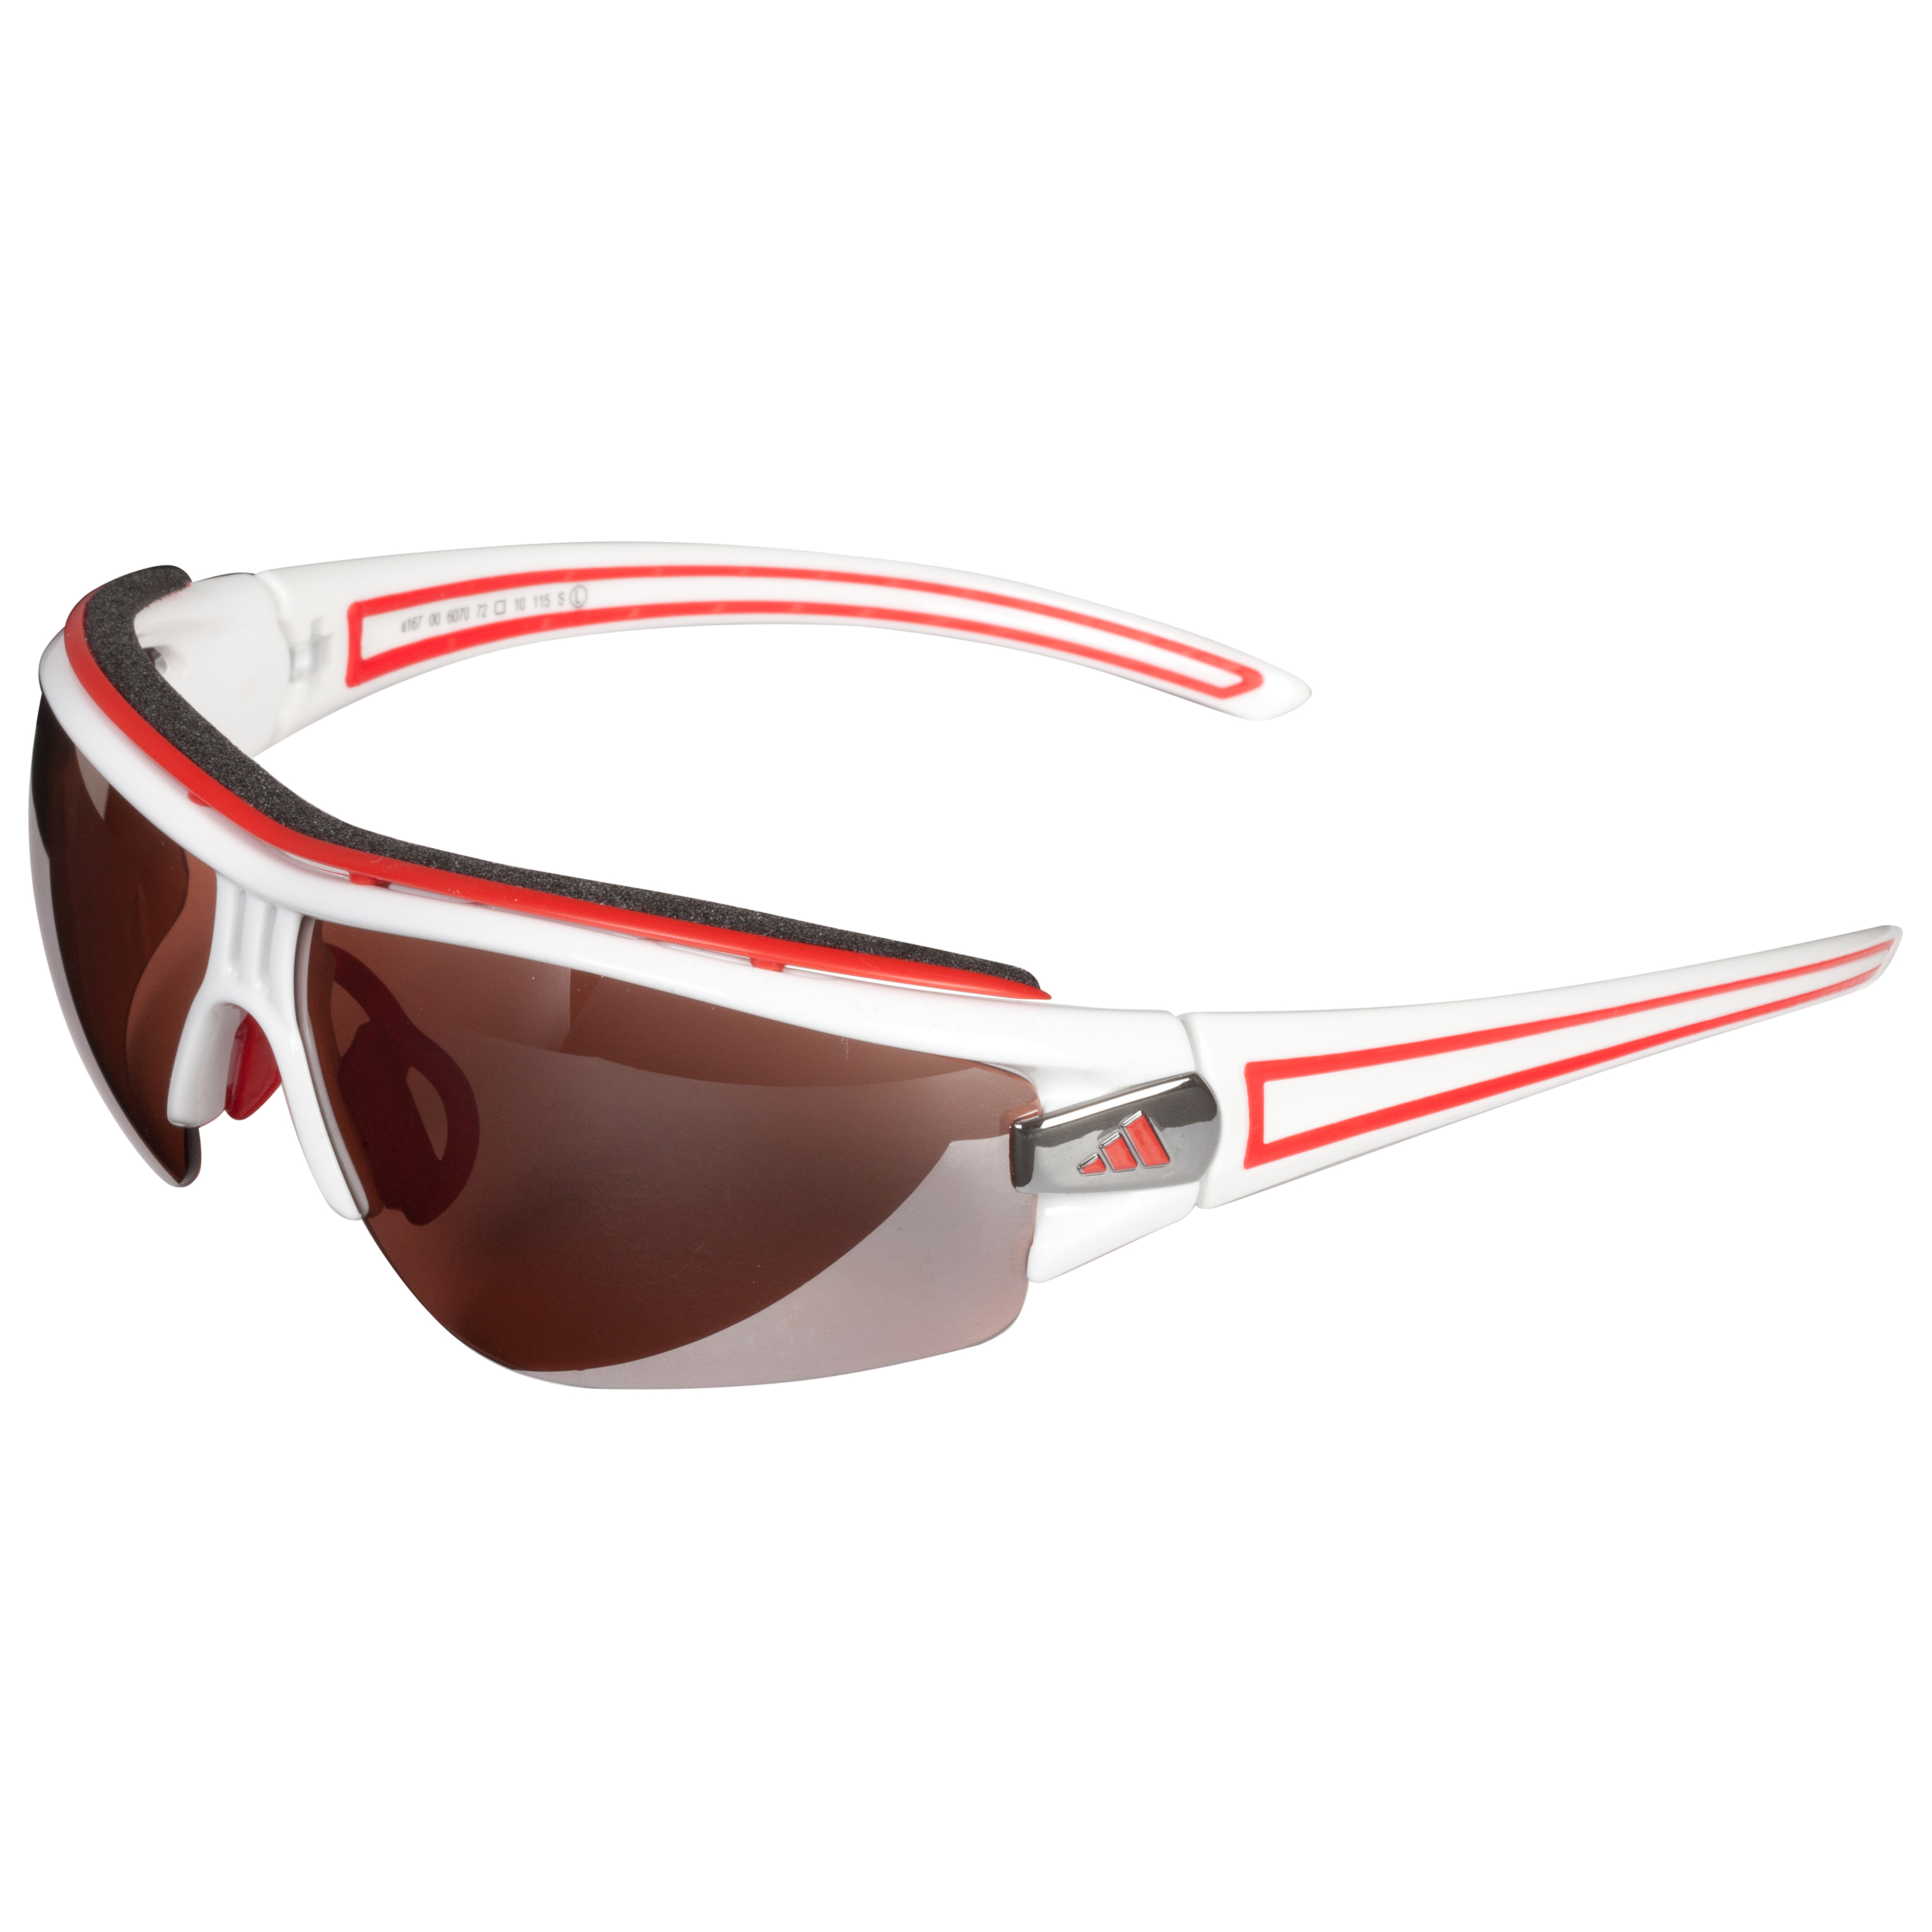 Adidas Evil Eye Halfrim Pro Sunglasses - White/Red - Large